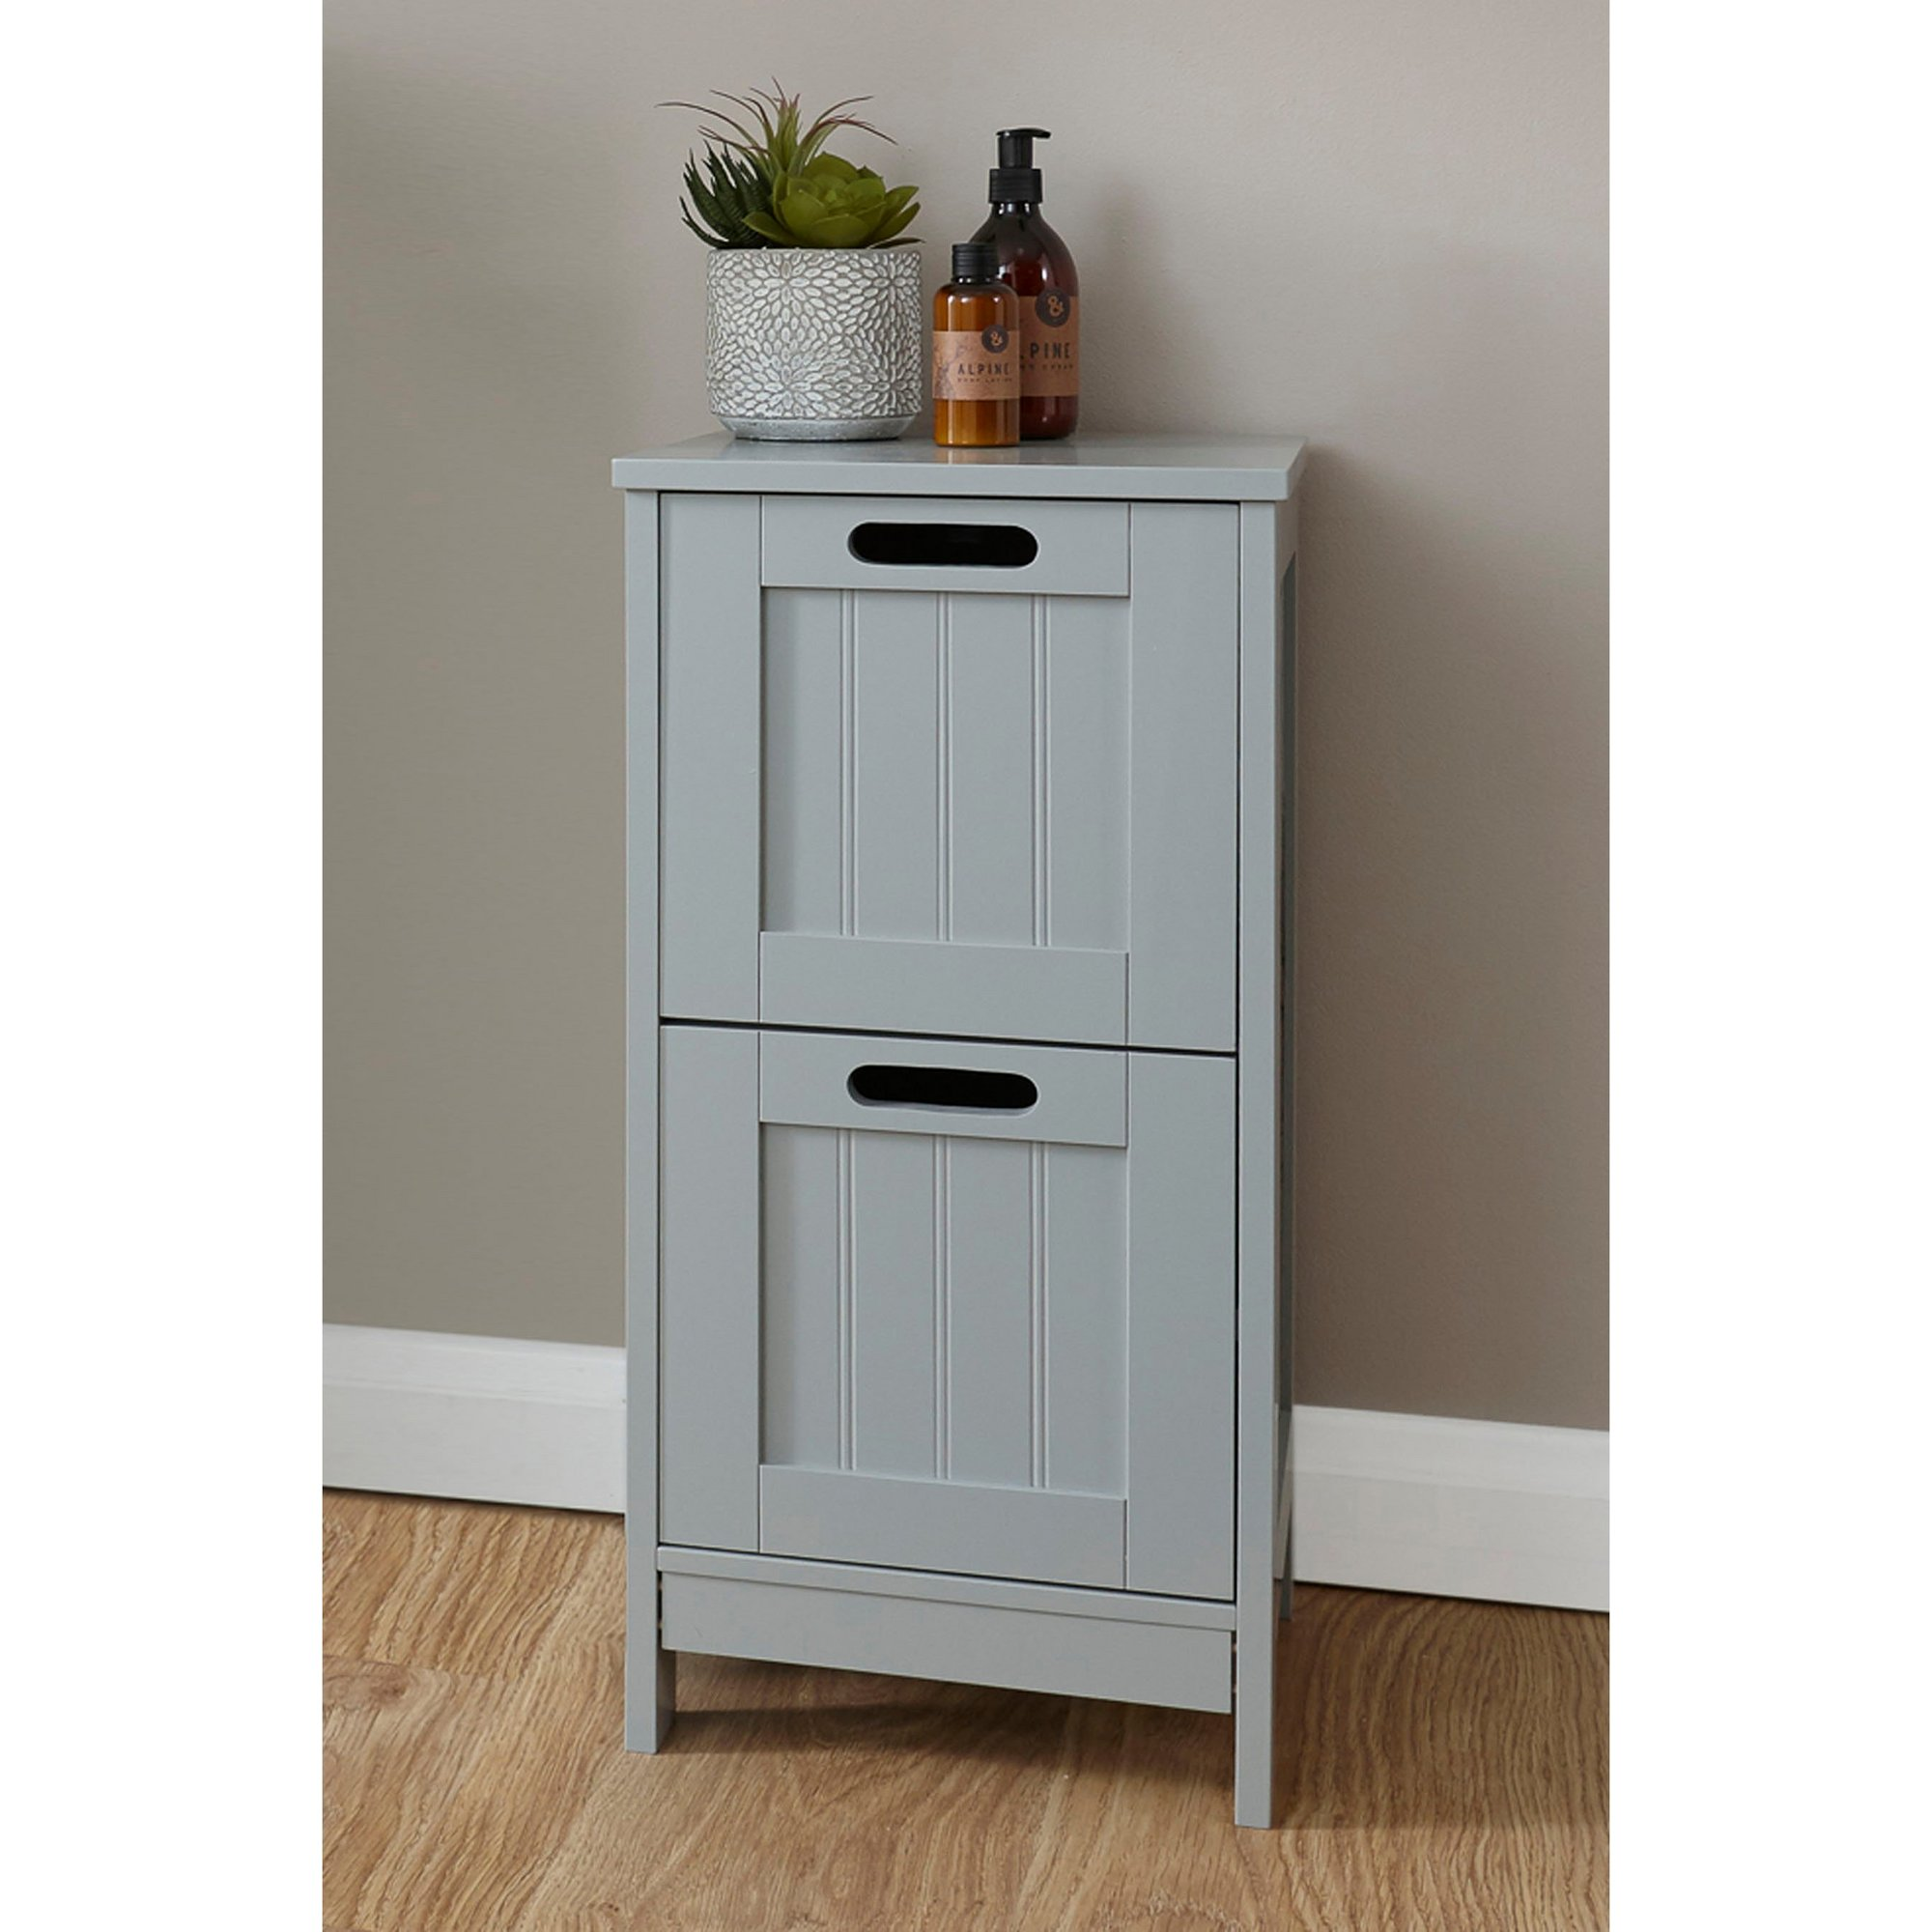 Image of Bathroom 2 Drawer Slim Chest